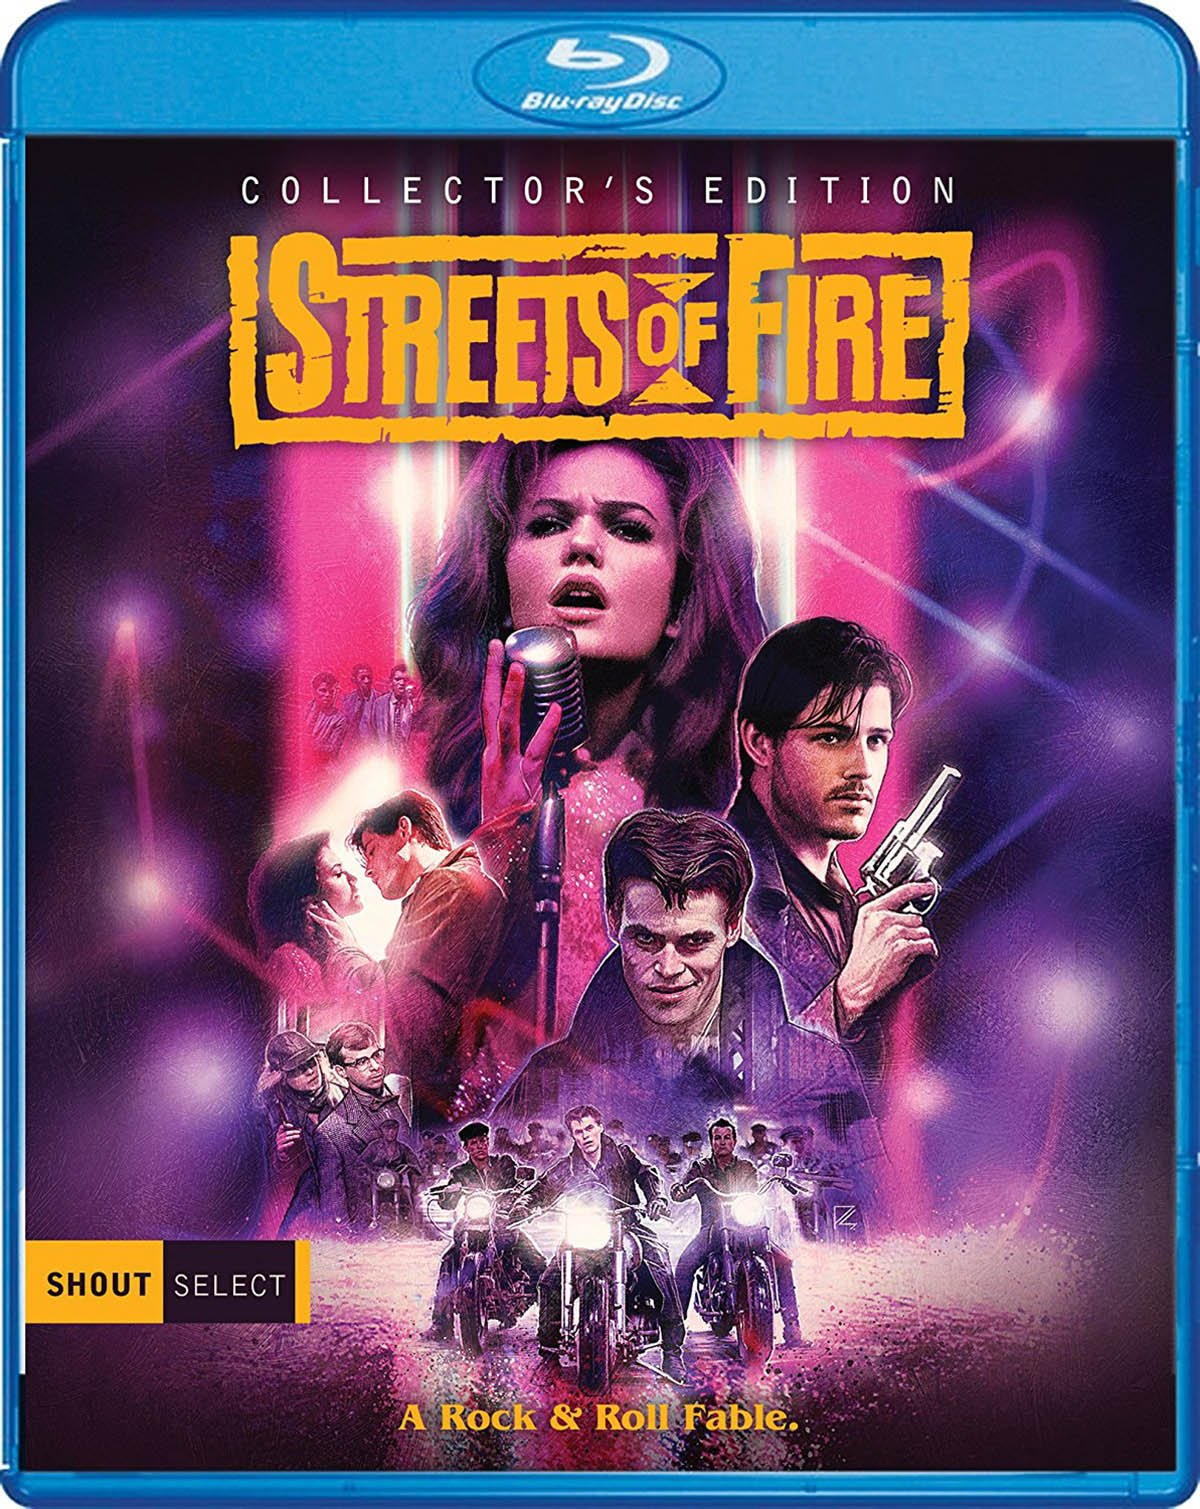 Review: Walter Hill's Streets of Fire on Shout! Factory Blu-ray